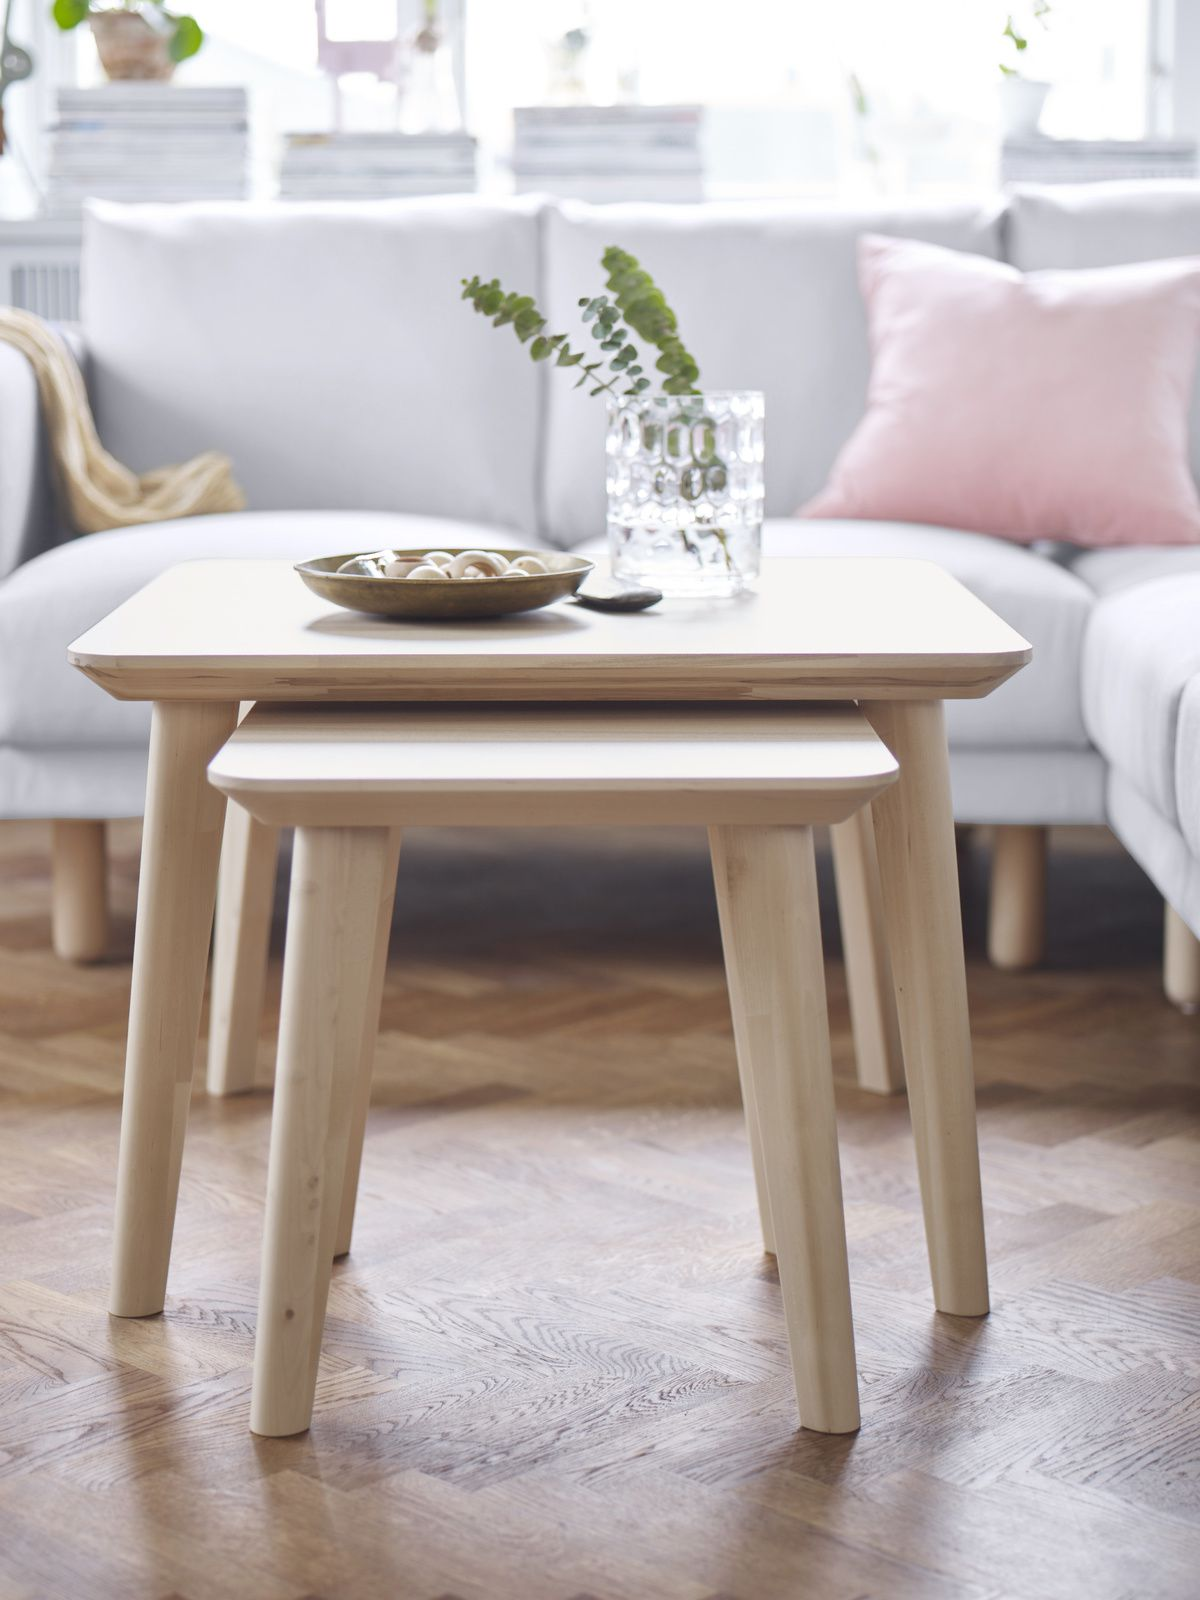 Table Basse Jardin Bois Ikea table basse ikea hemnes ou lisabo - fashion maman